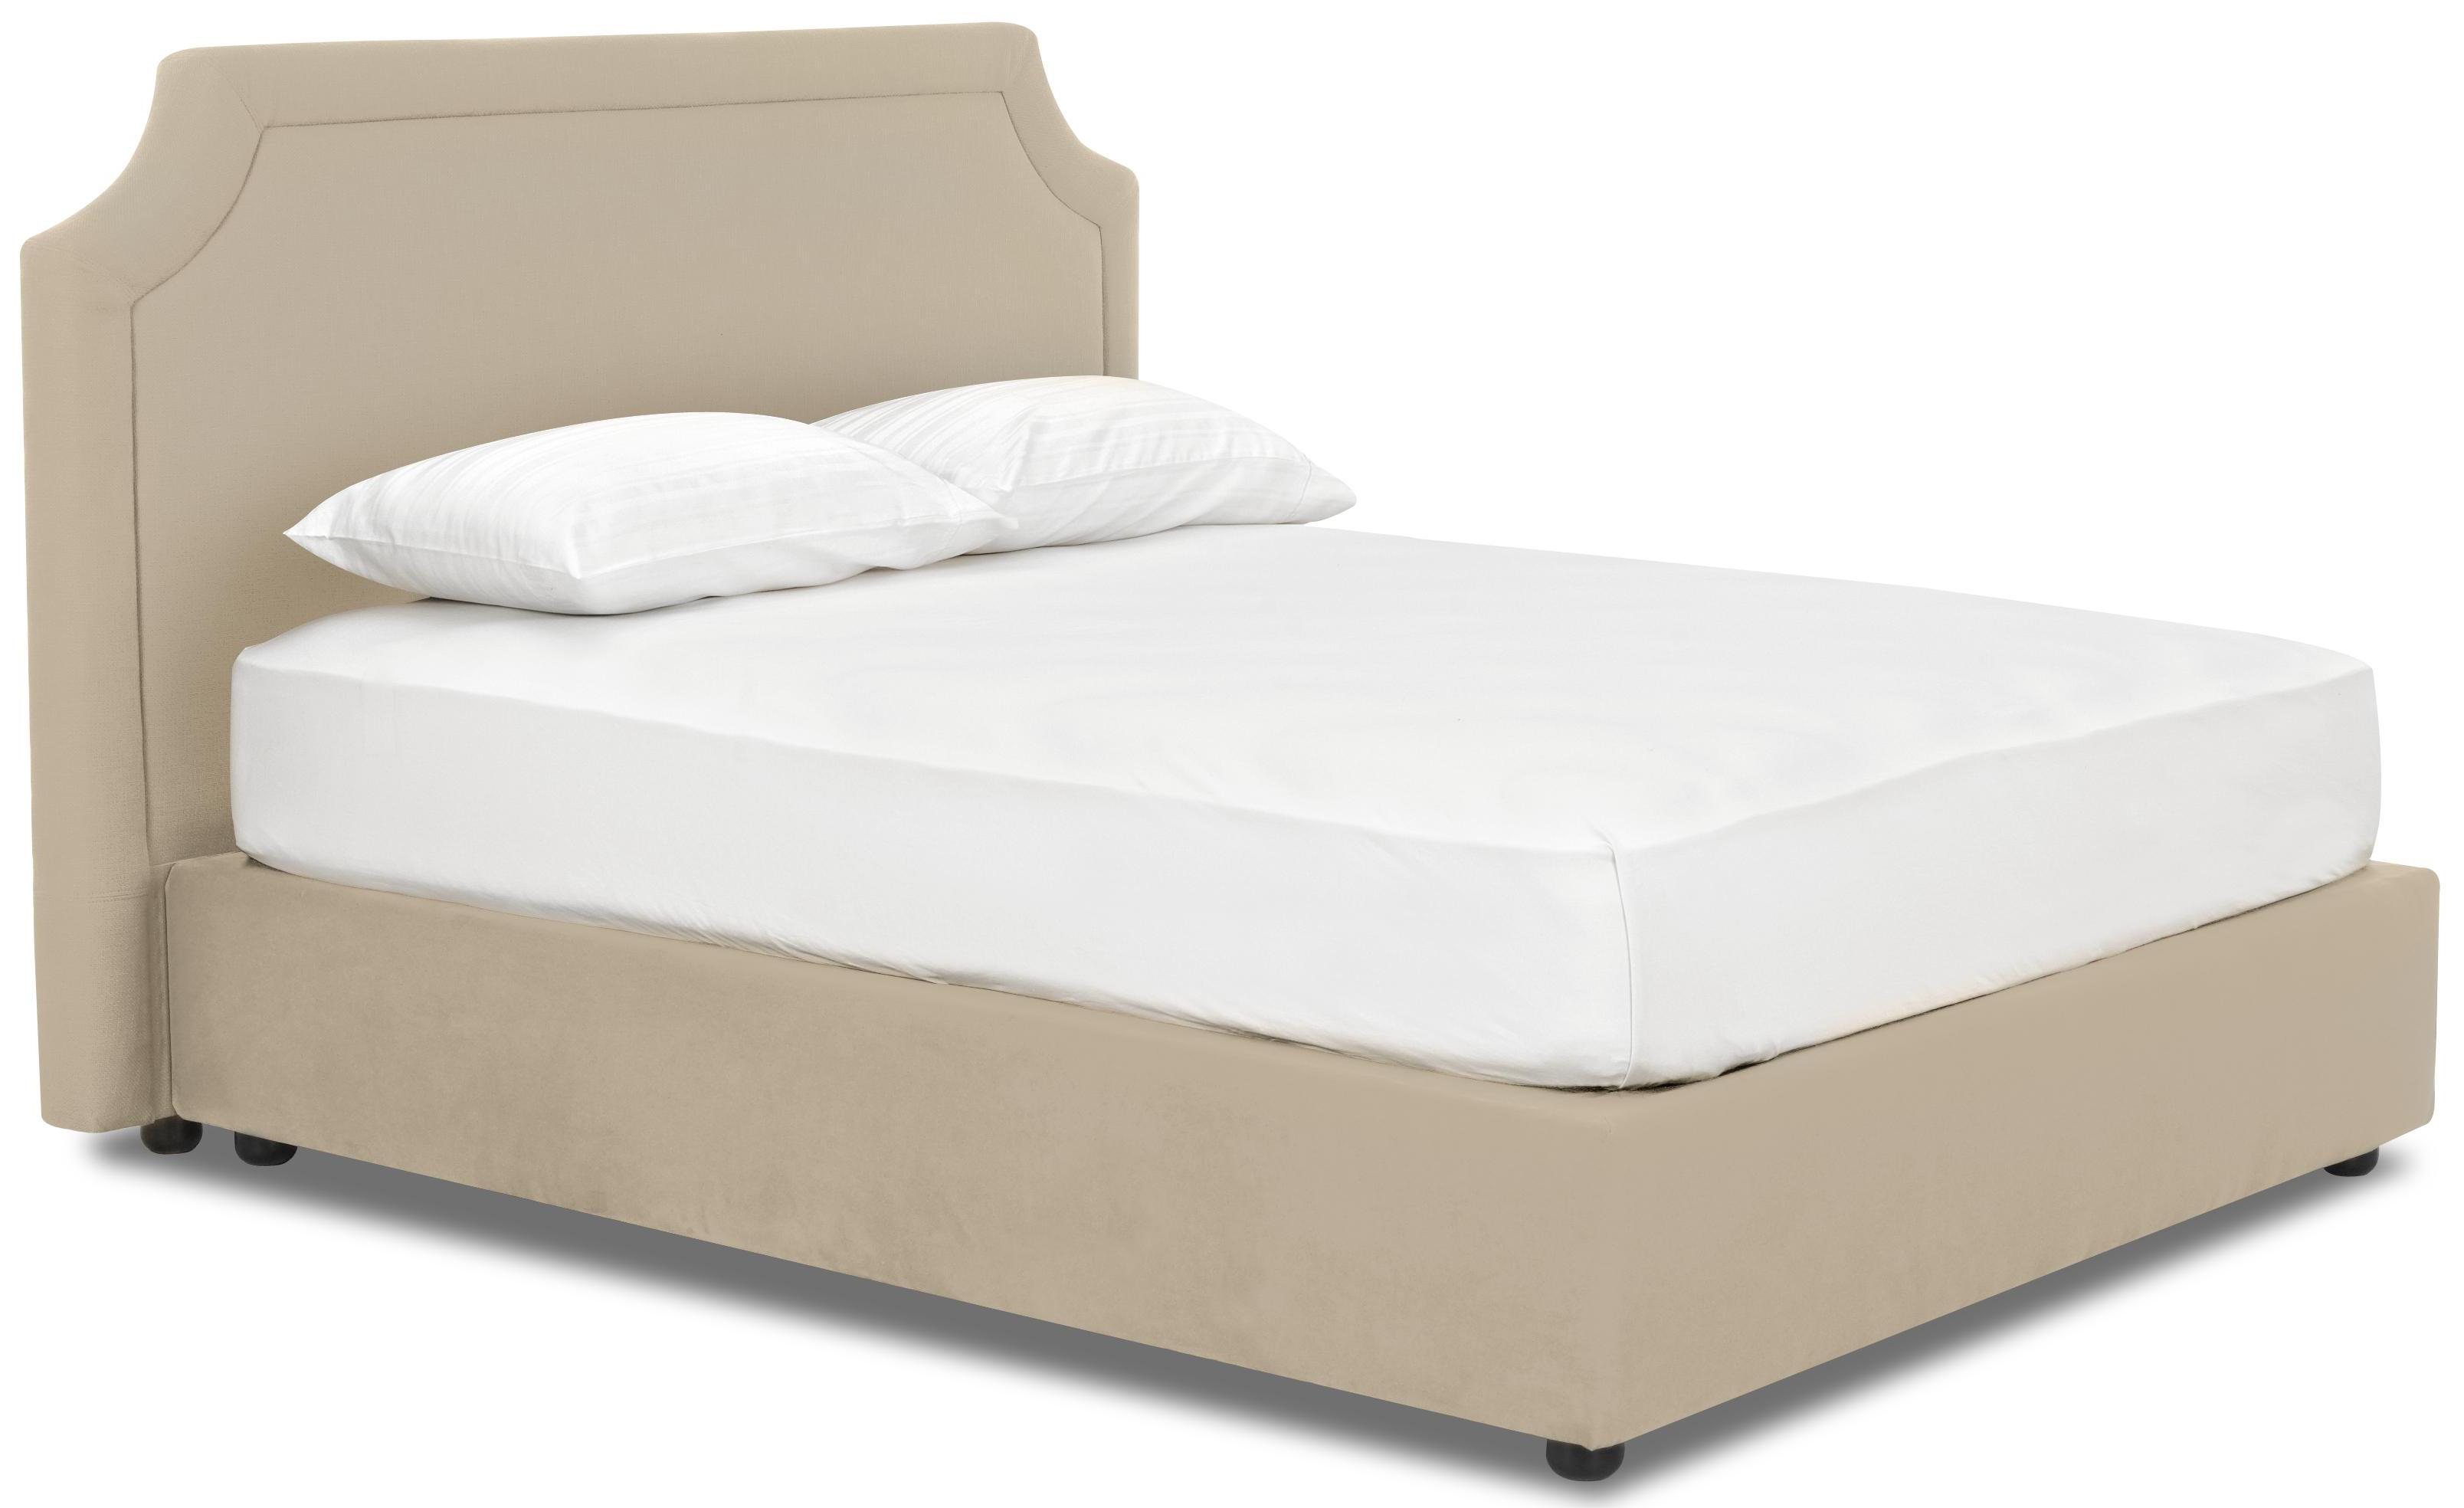 Klaussner upholstered beds and headboards queen for Upholstered bed and mattress